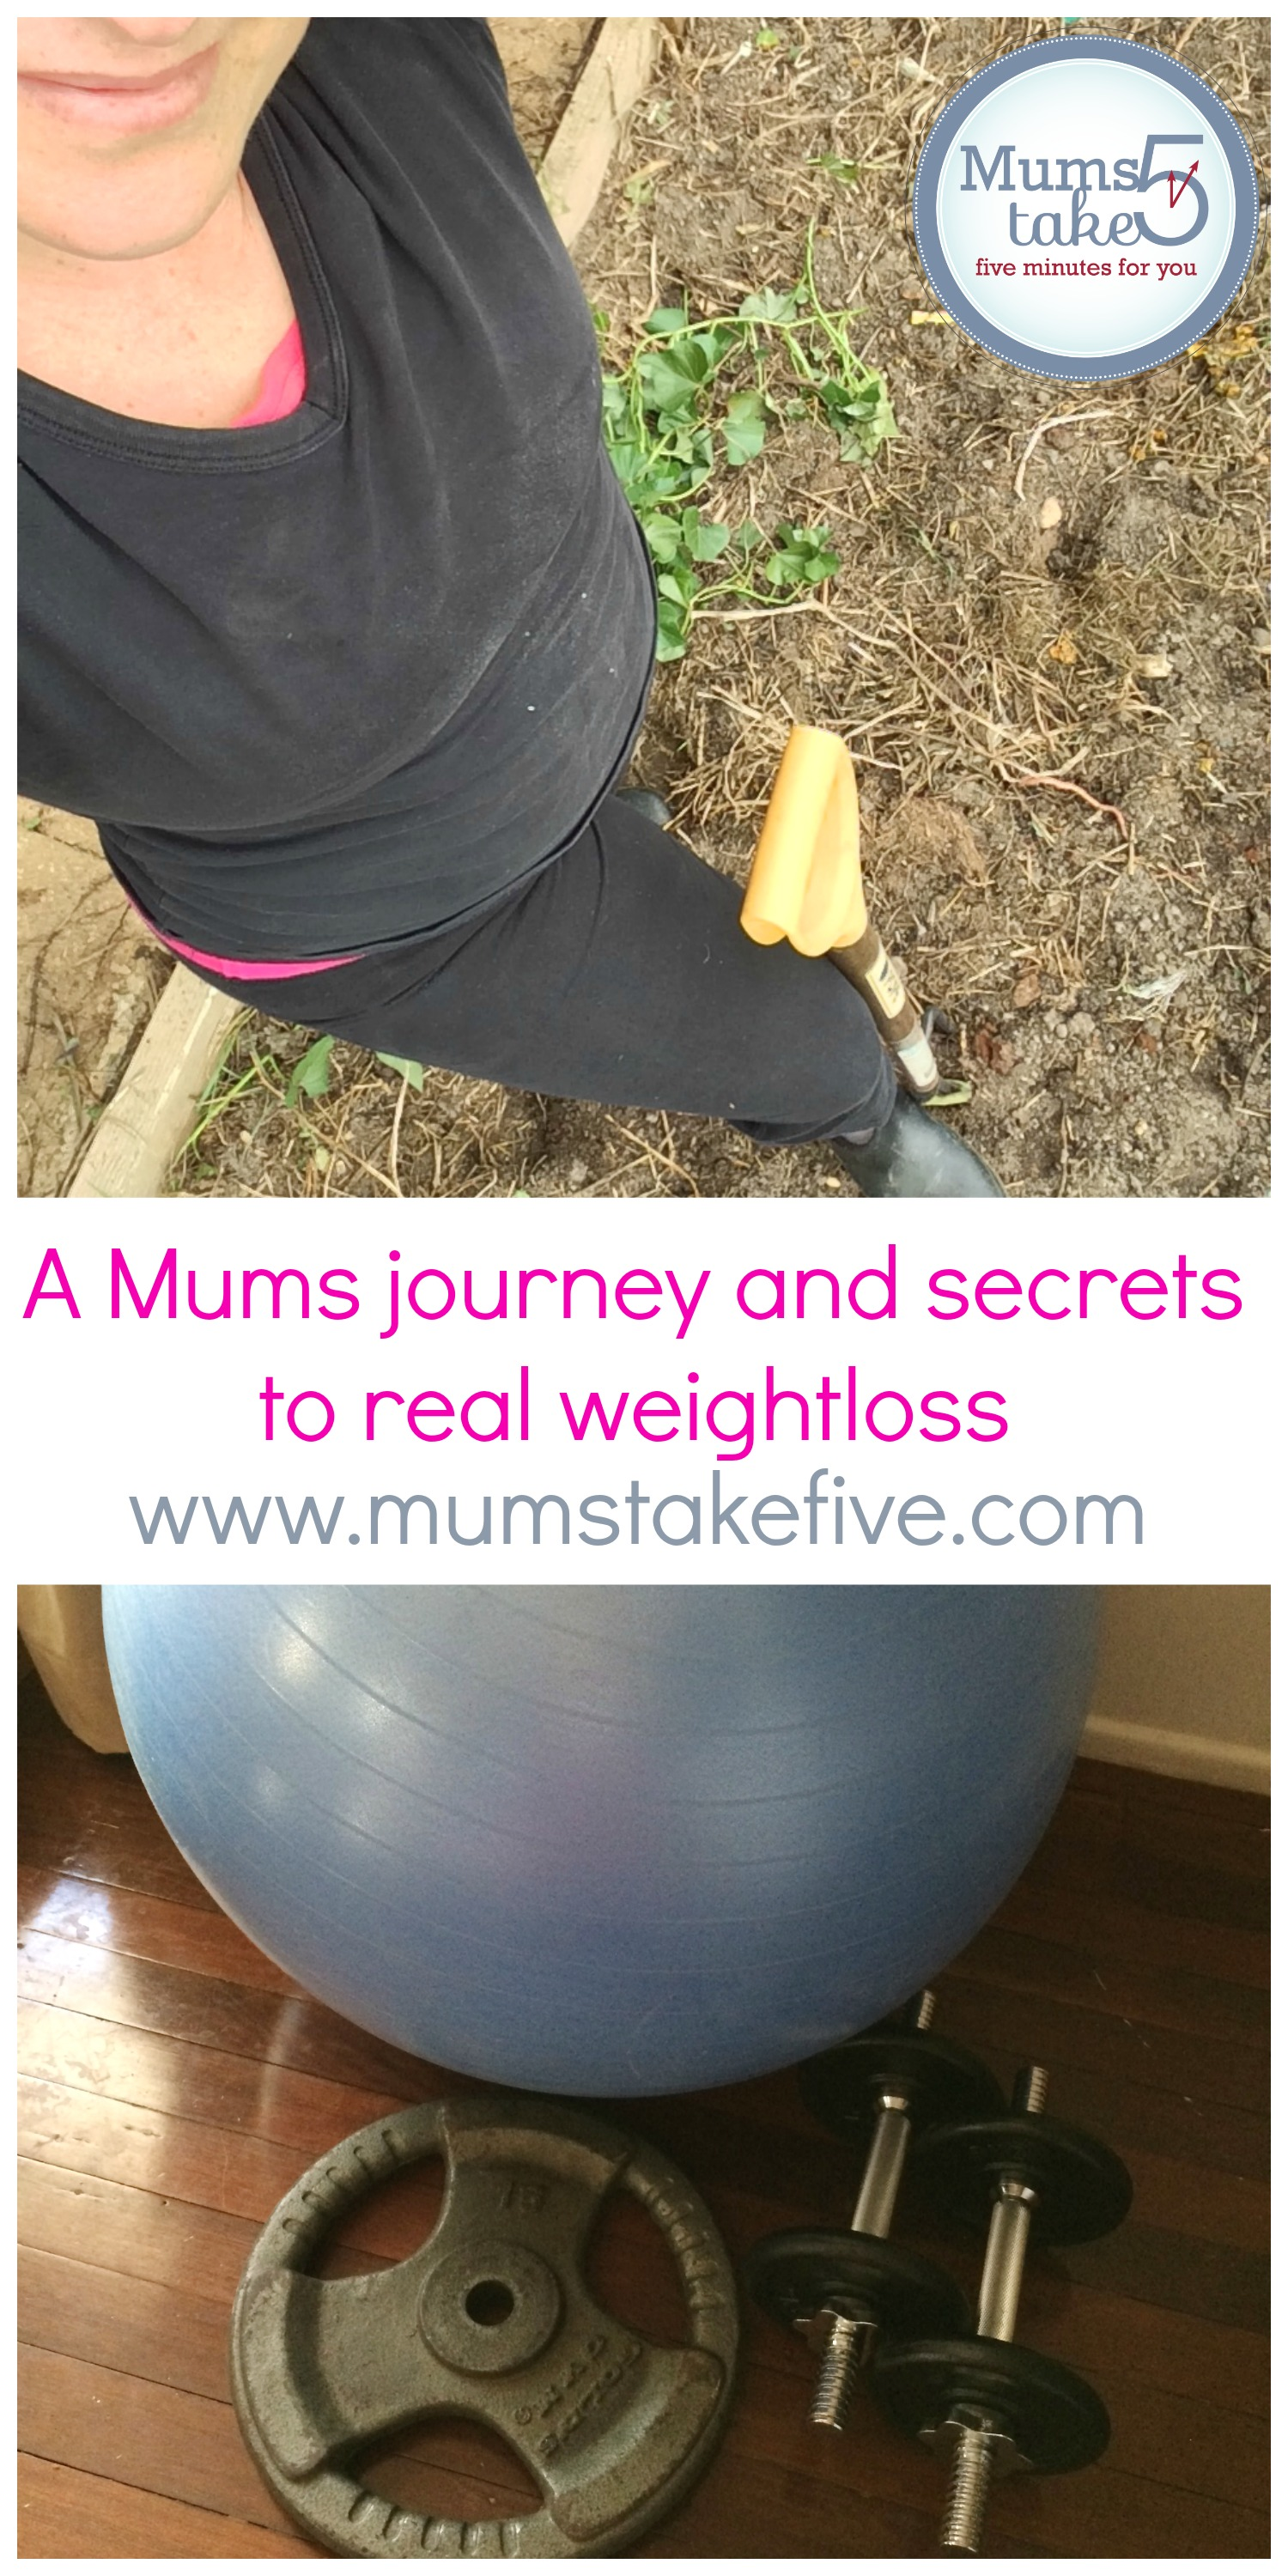 secrets to weighltoss and how to get started from a mum